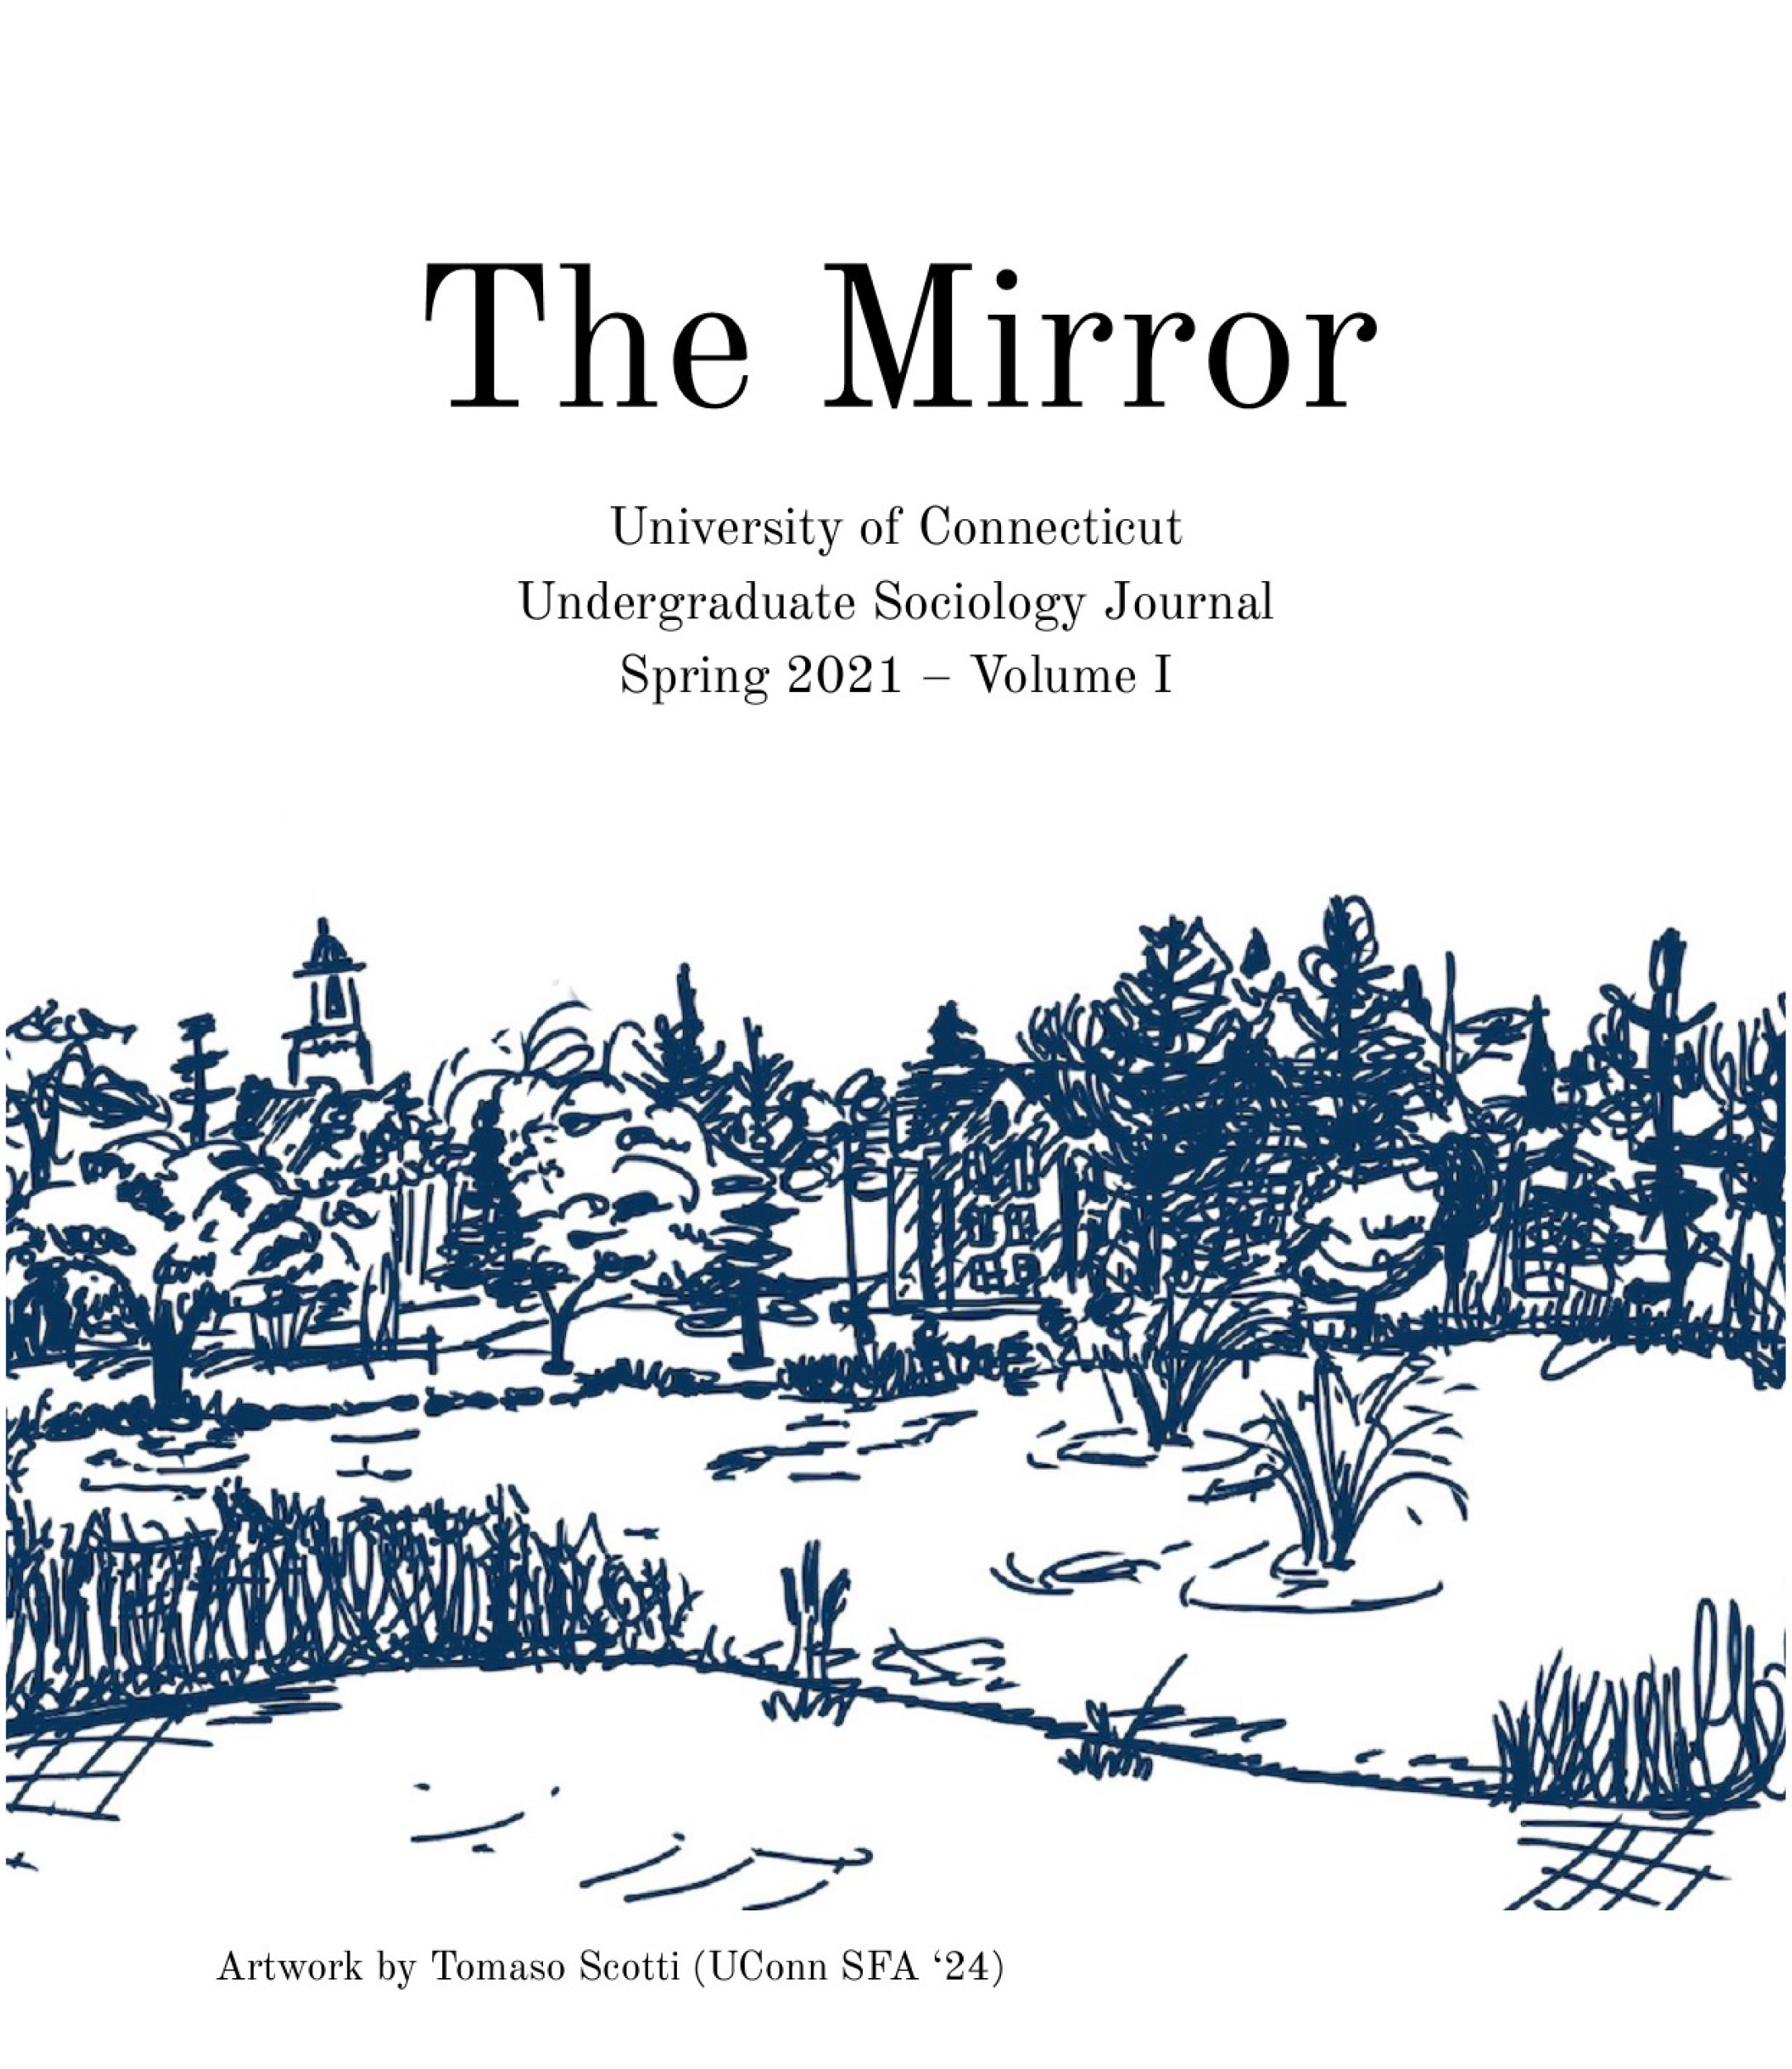 """Cover for the undergraduate Sociology journal, """"The Mirror."""""""